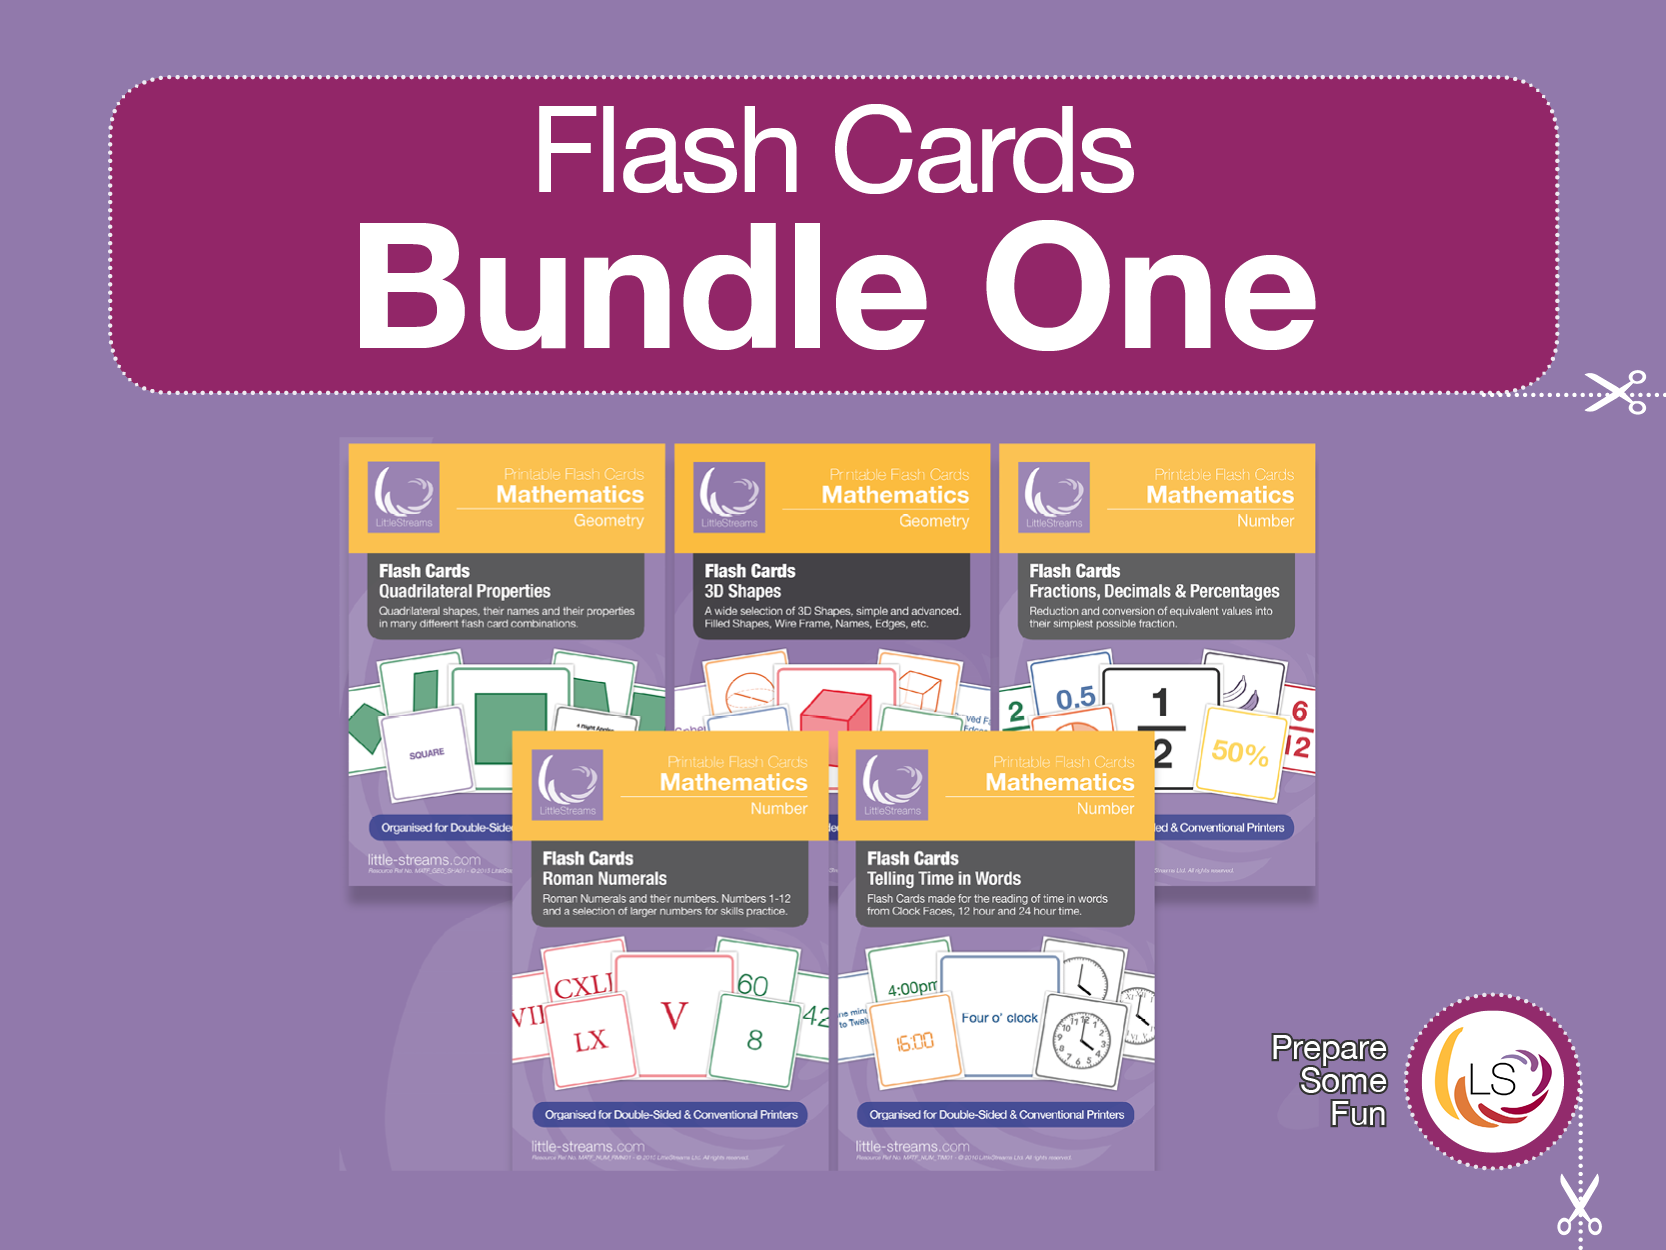 Flash Cards Bundle